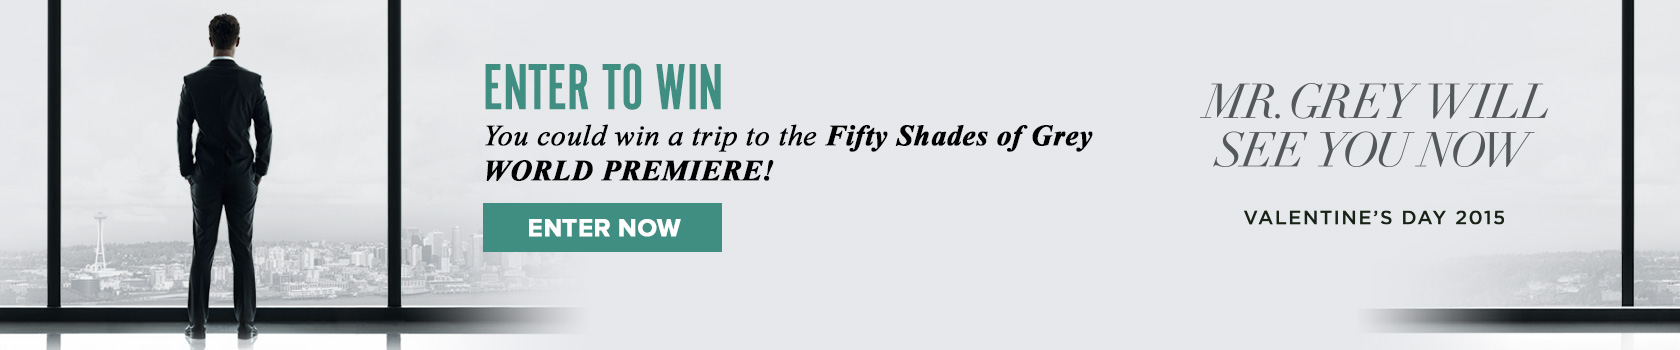 50 Shades of Grey Movie Sweepstakes